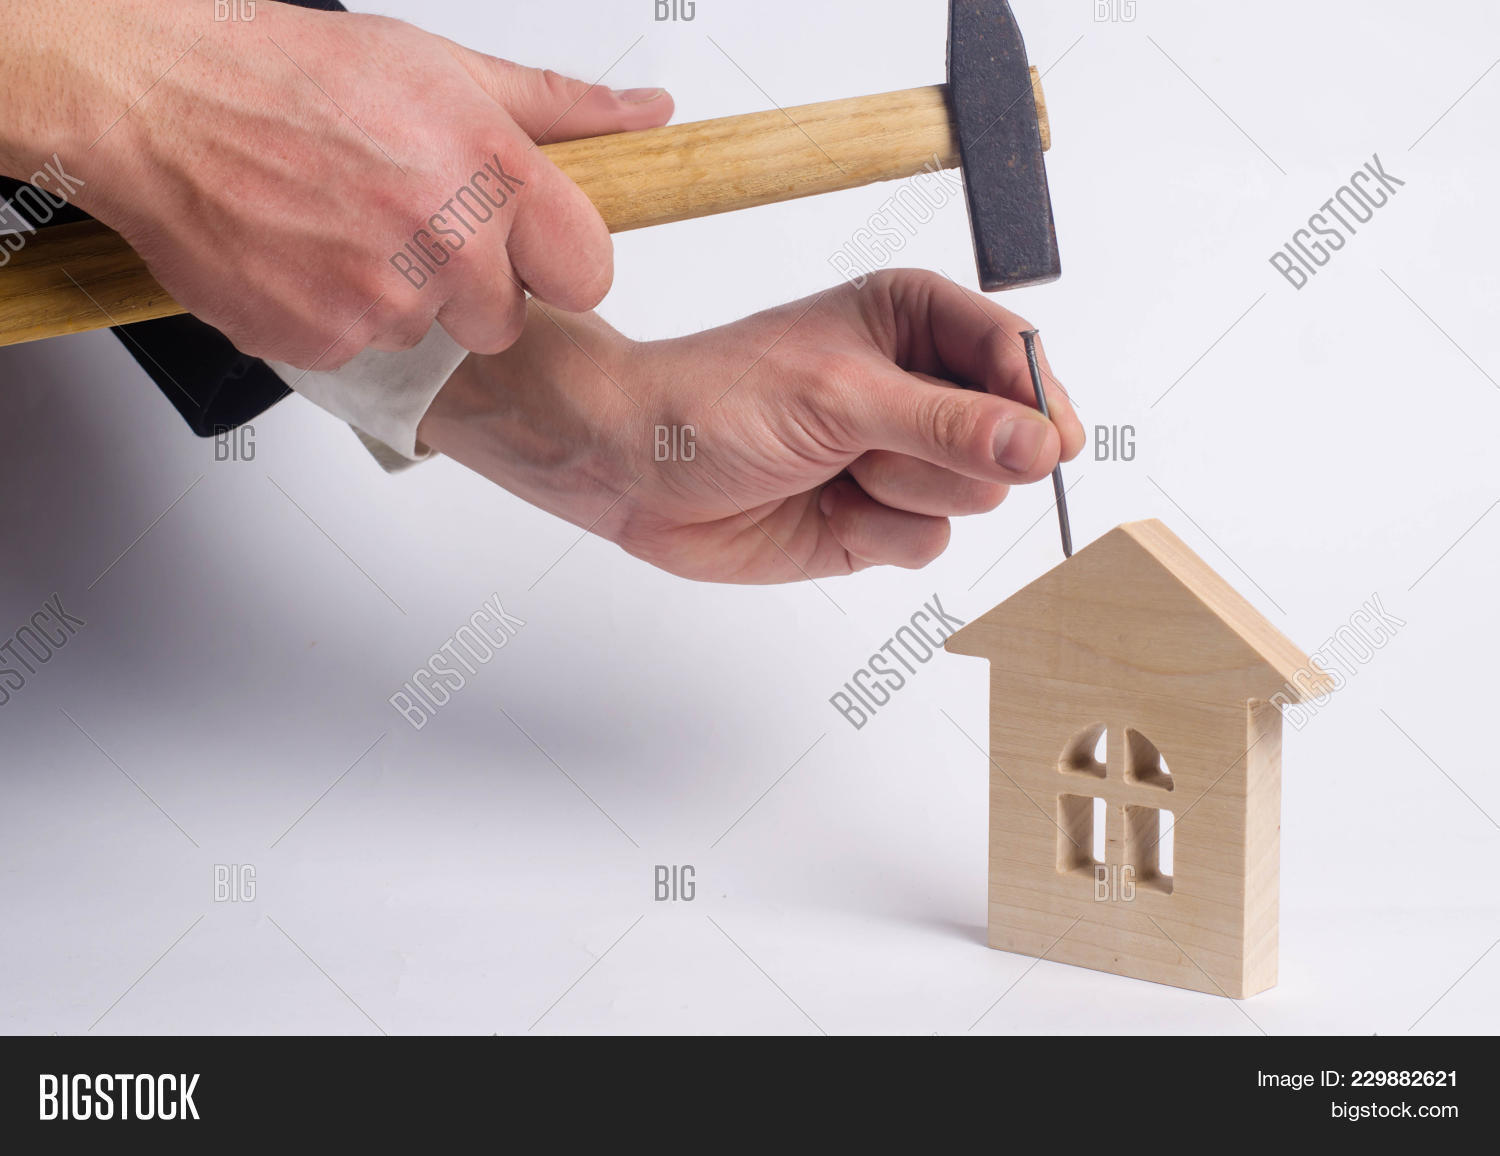 The House Of Hammer man hammers nail image & photo (free trial) | bigstock